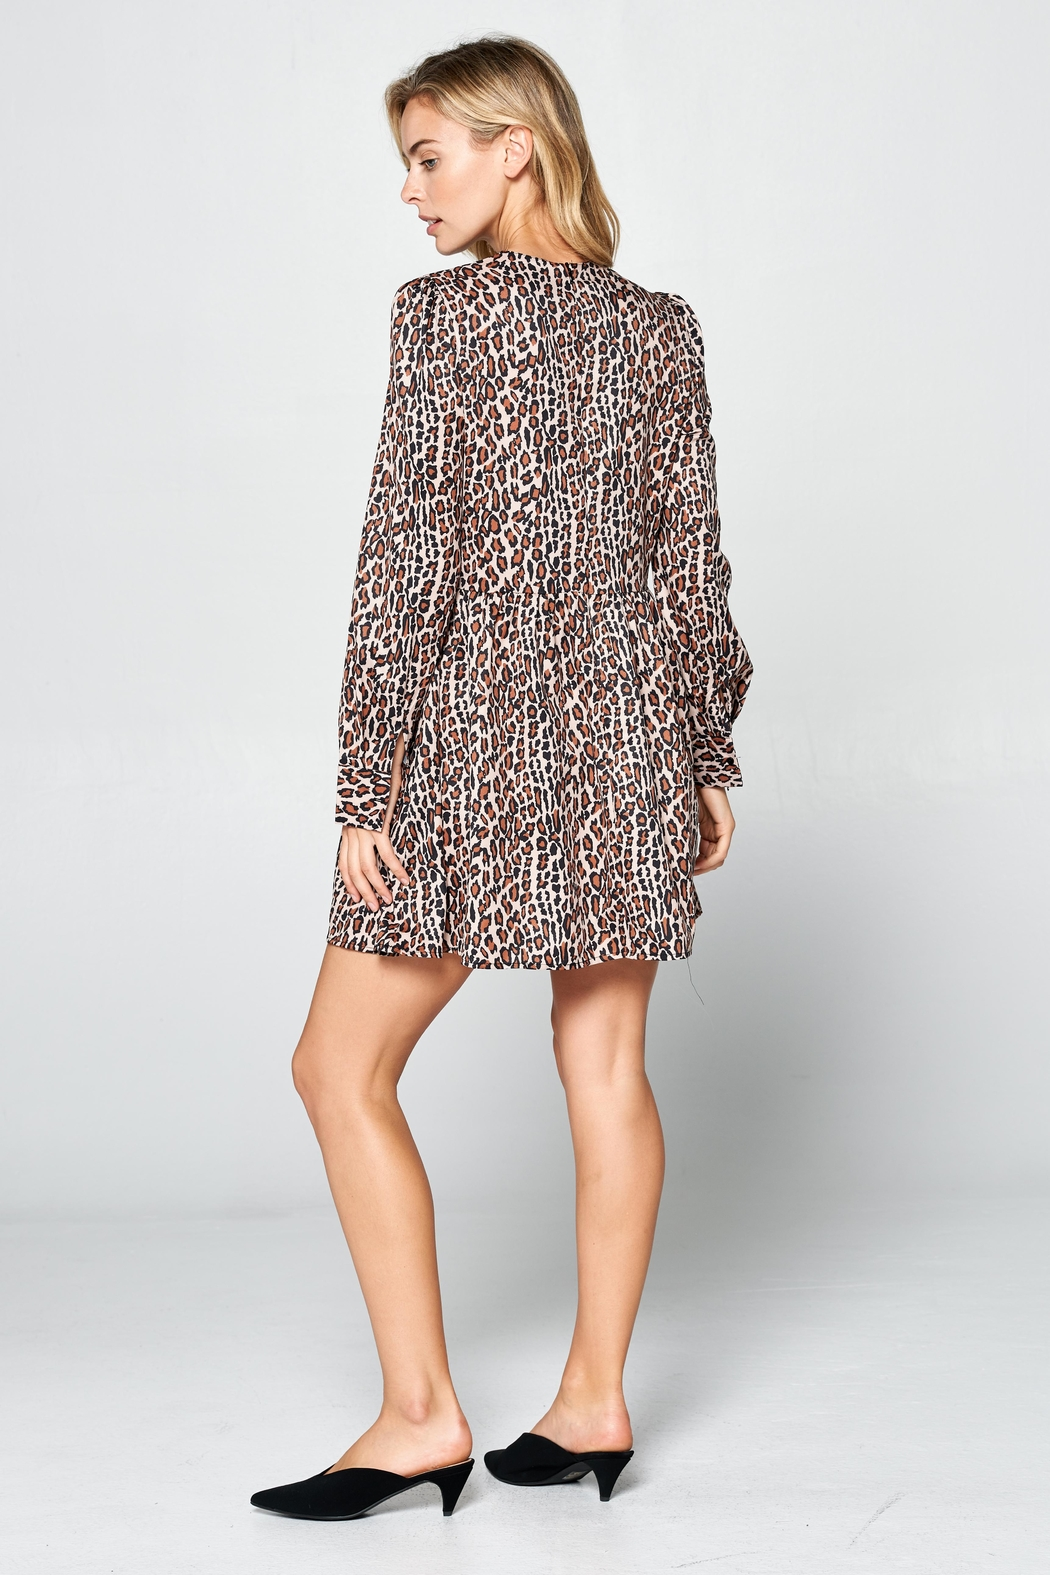 Racine Leopard Print Dress - Side Cropped Image